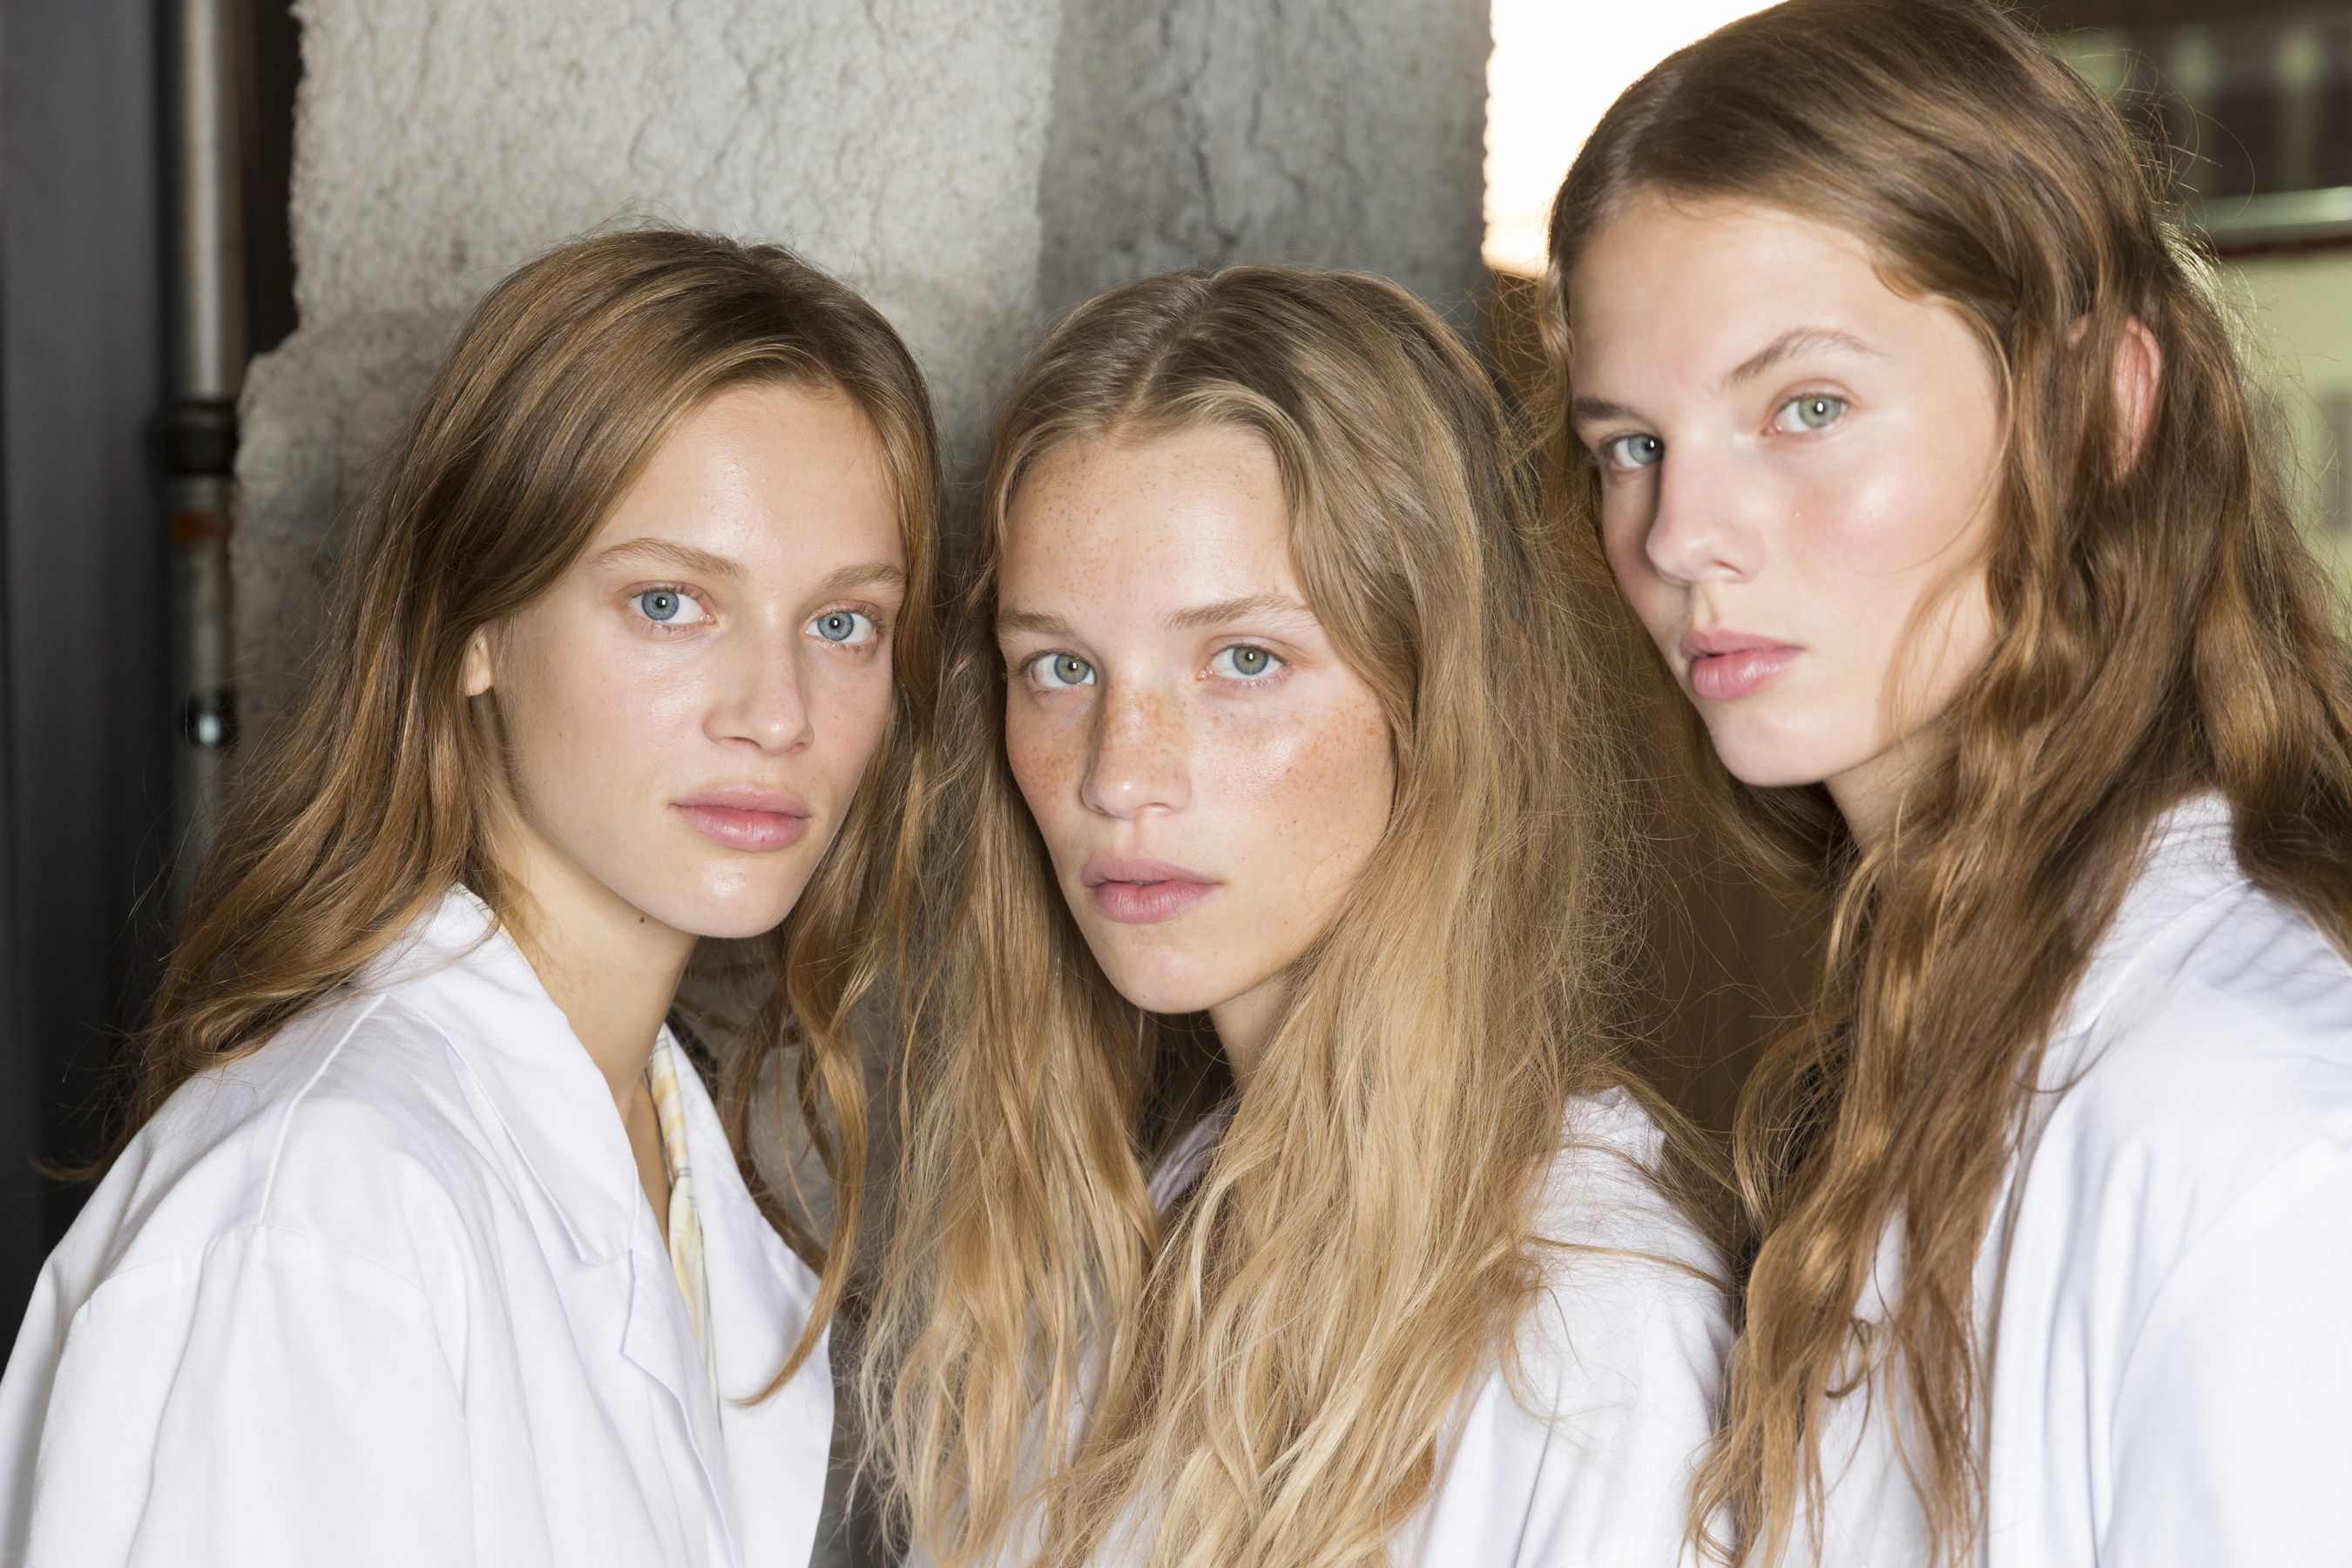 Michael Kors Spring 2019 Fashion Show Backstage Beauty